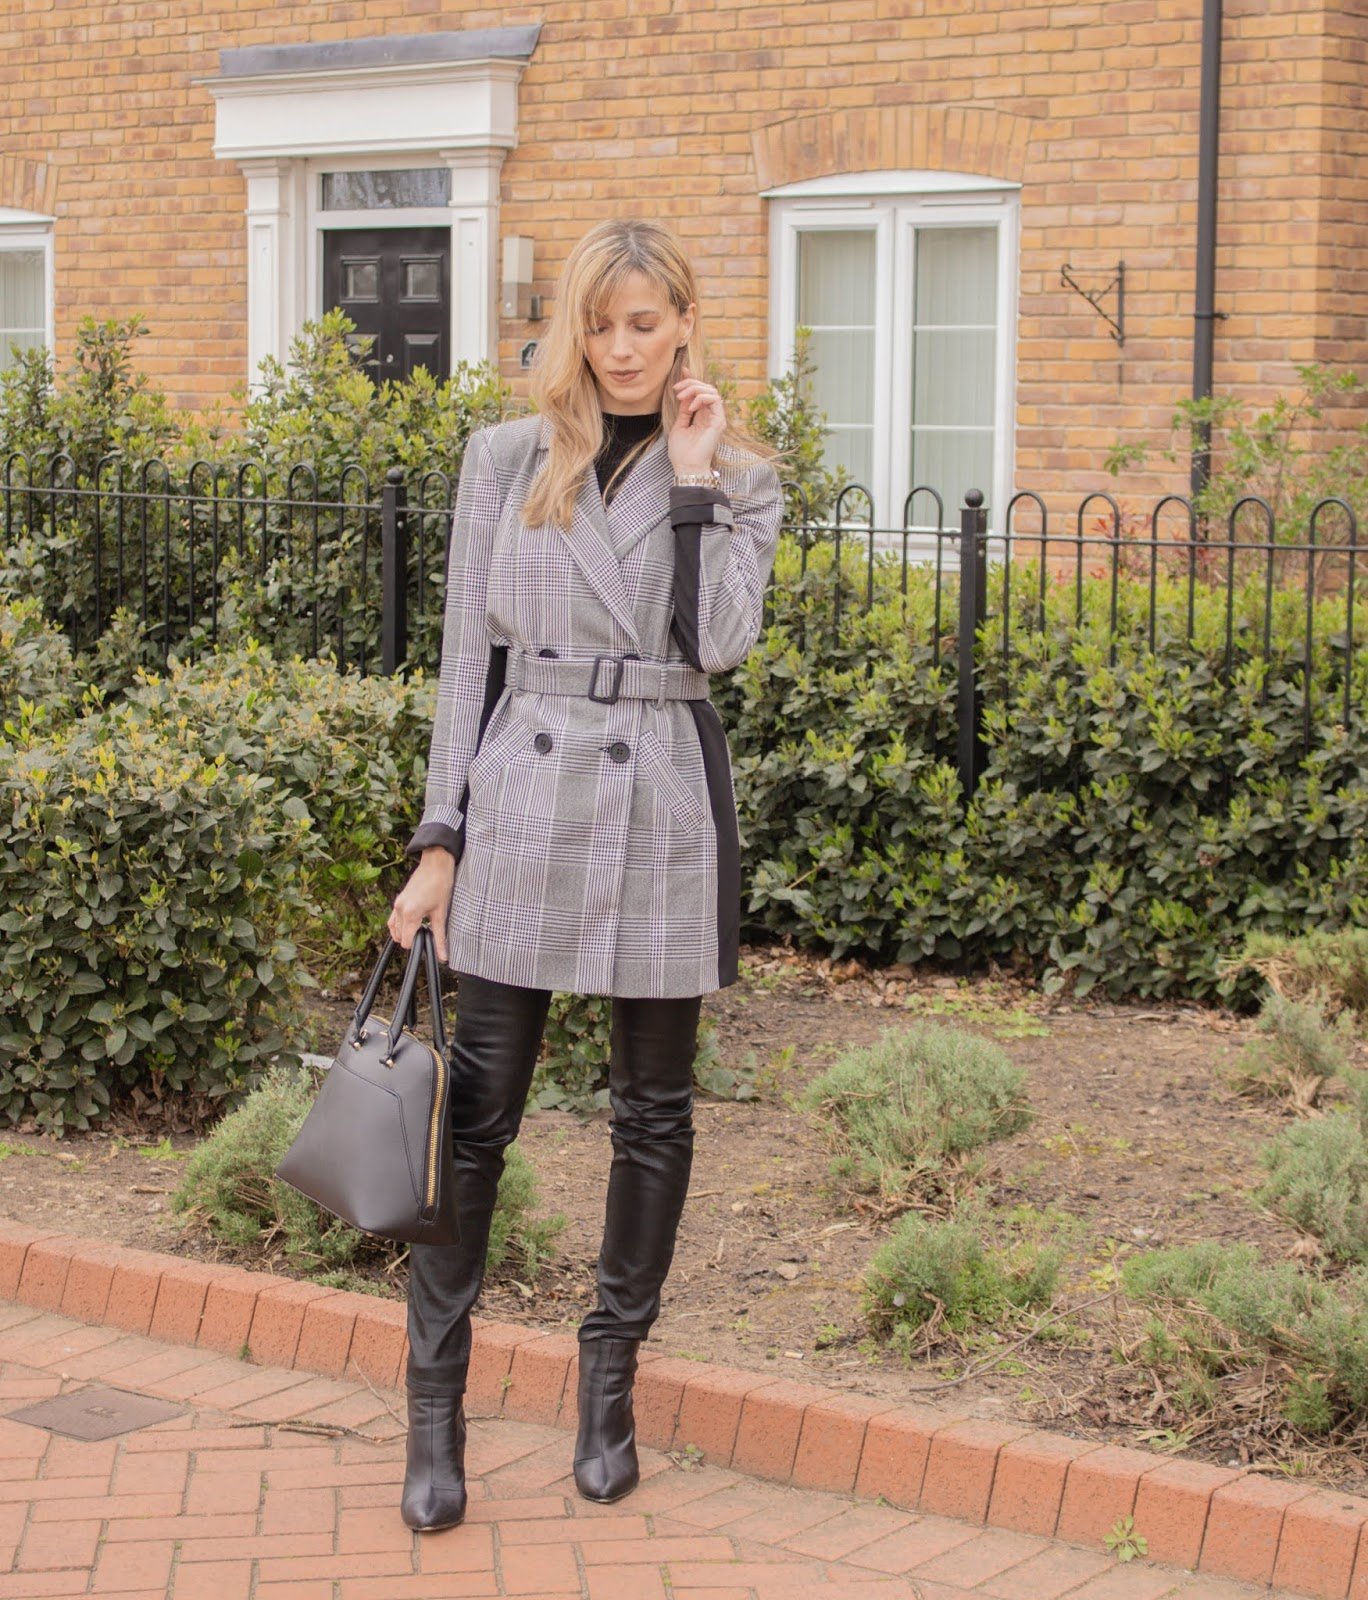 Styling Faux Leather Trousers - The Daytime Edit